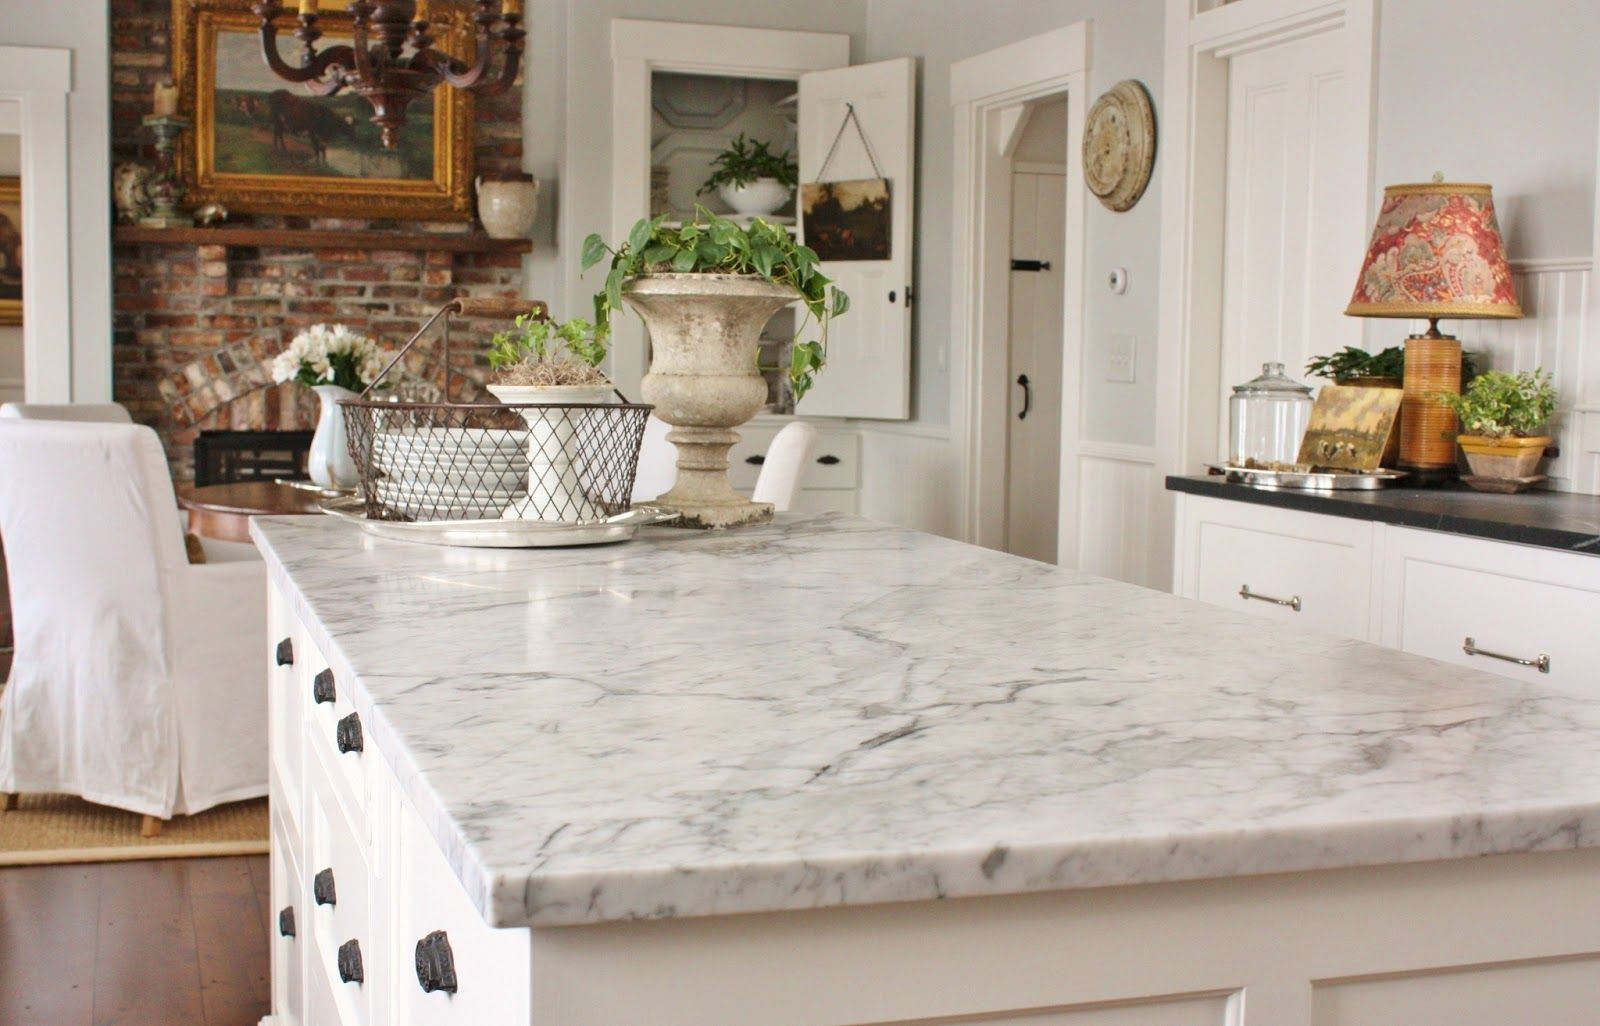 How To Choose The Right Countertop Quartz Kitchen Countertops